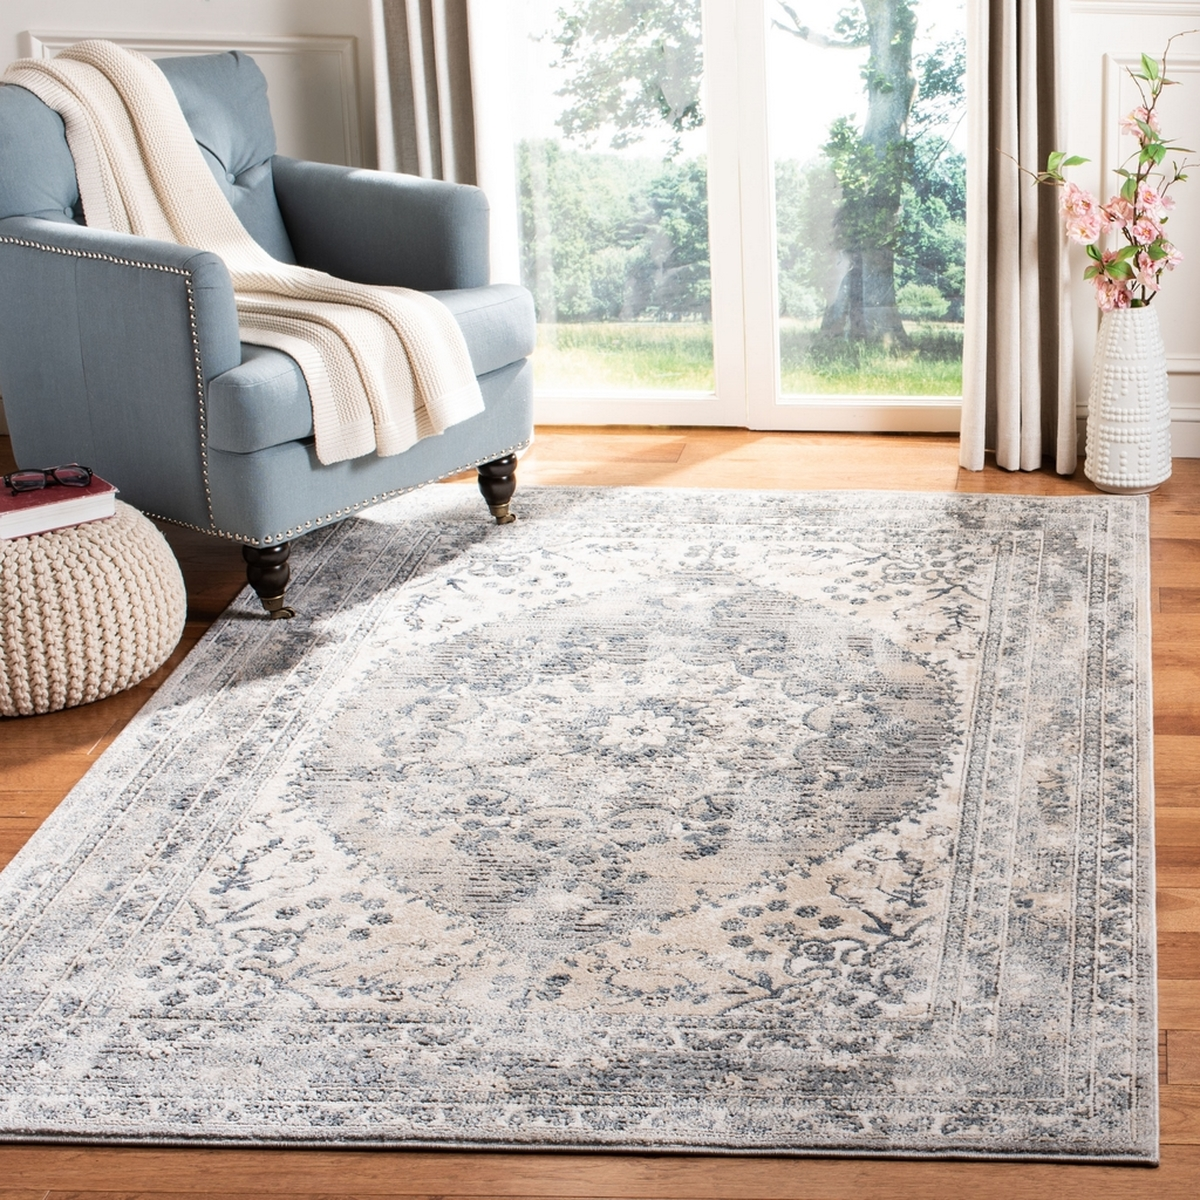 Rug Ore903a Oregon Area Rugs By Safavieh